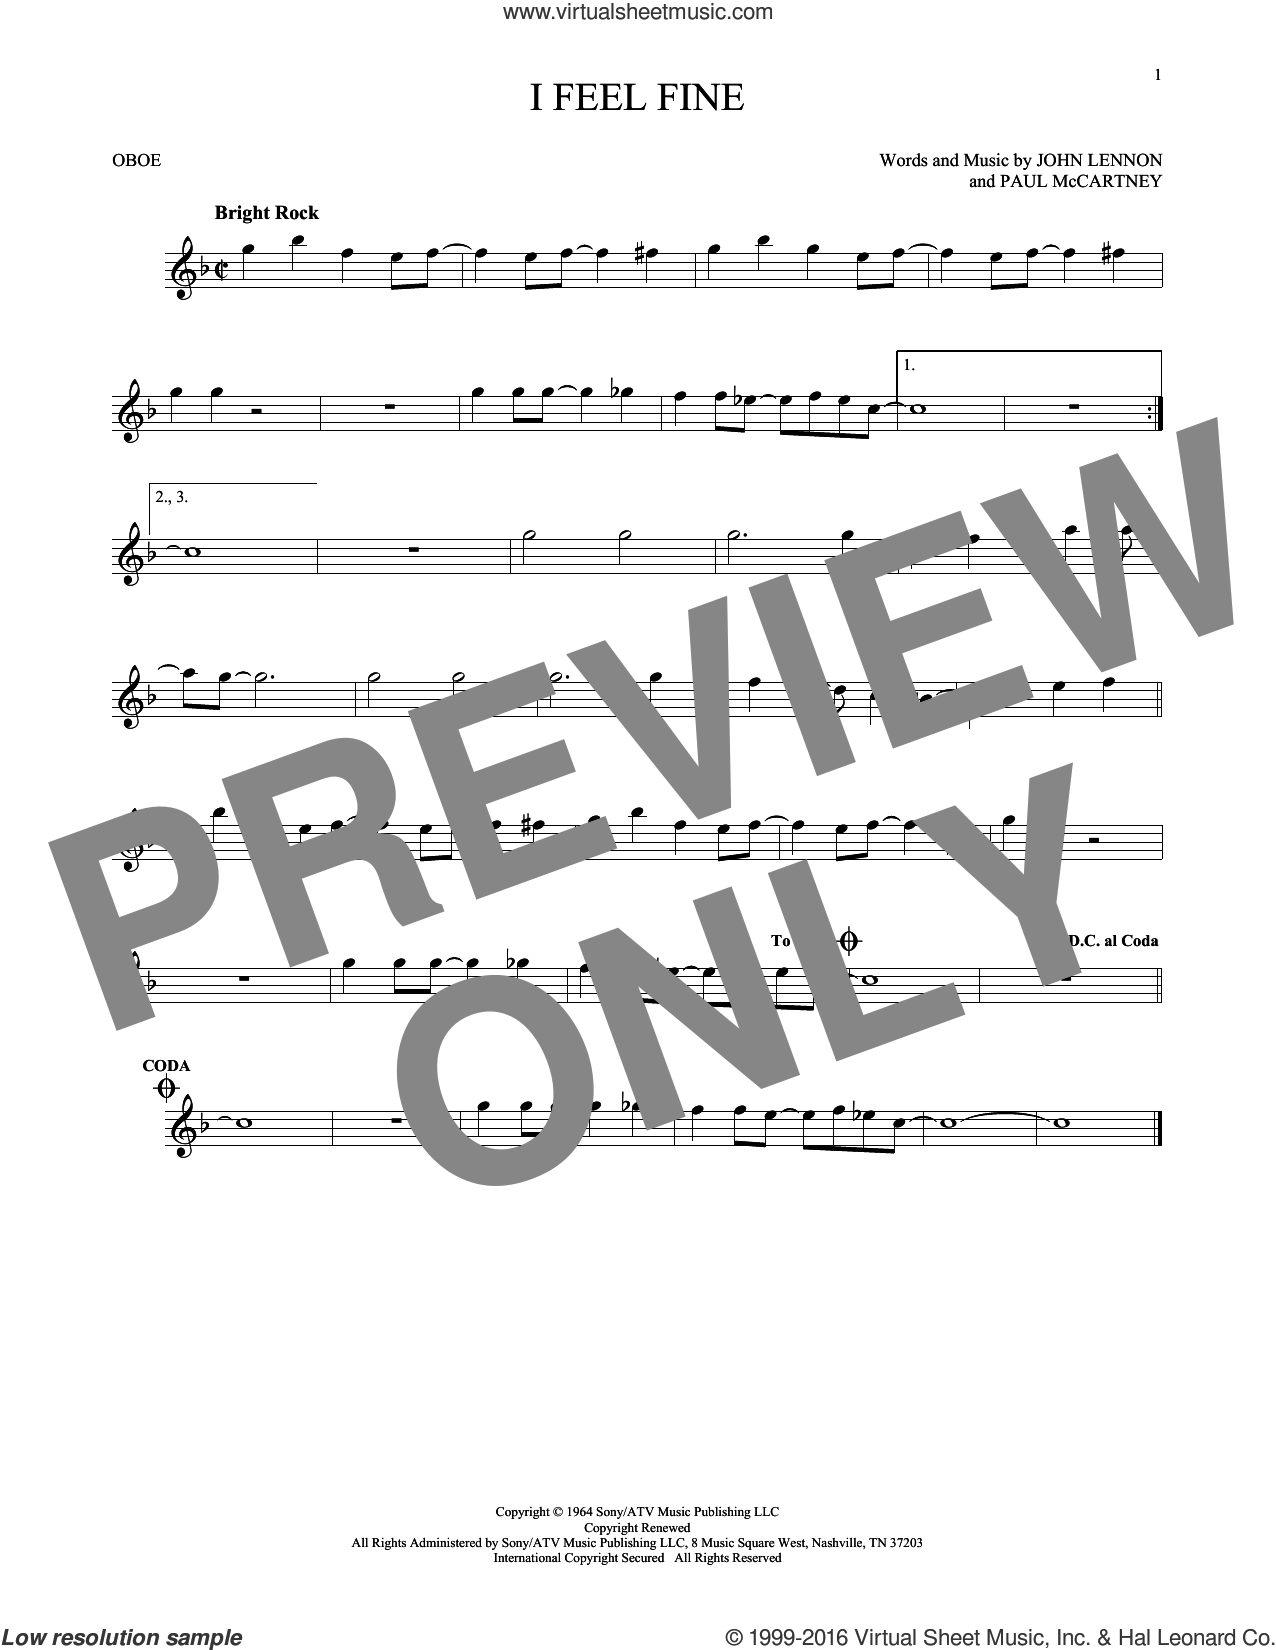 I Feel Fine sheet music for oboe solo by The Beatles, John Lennon and Paul McCartney, intermediate skill level